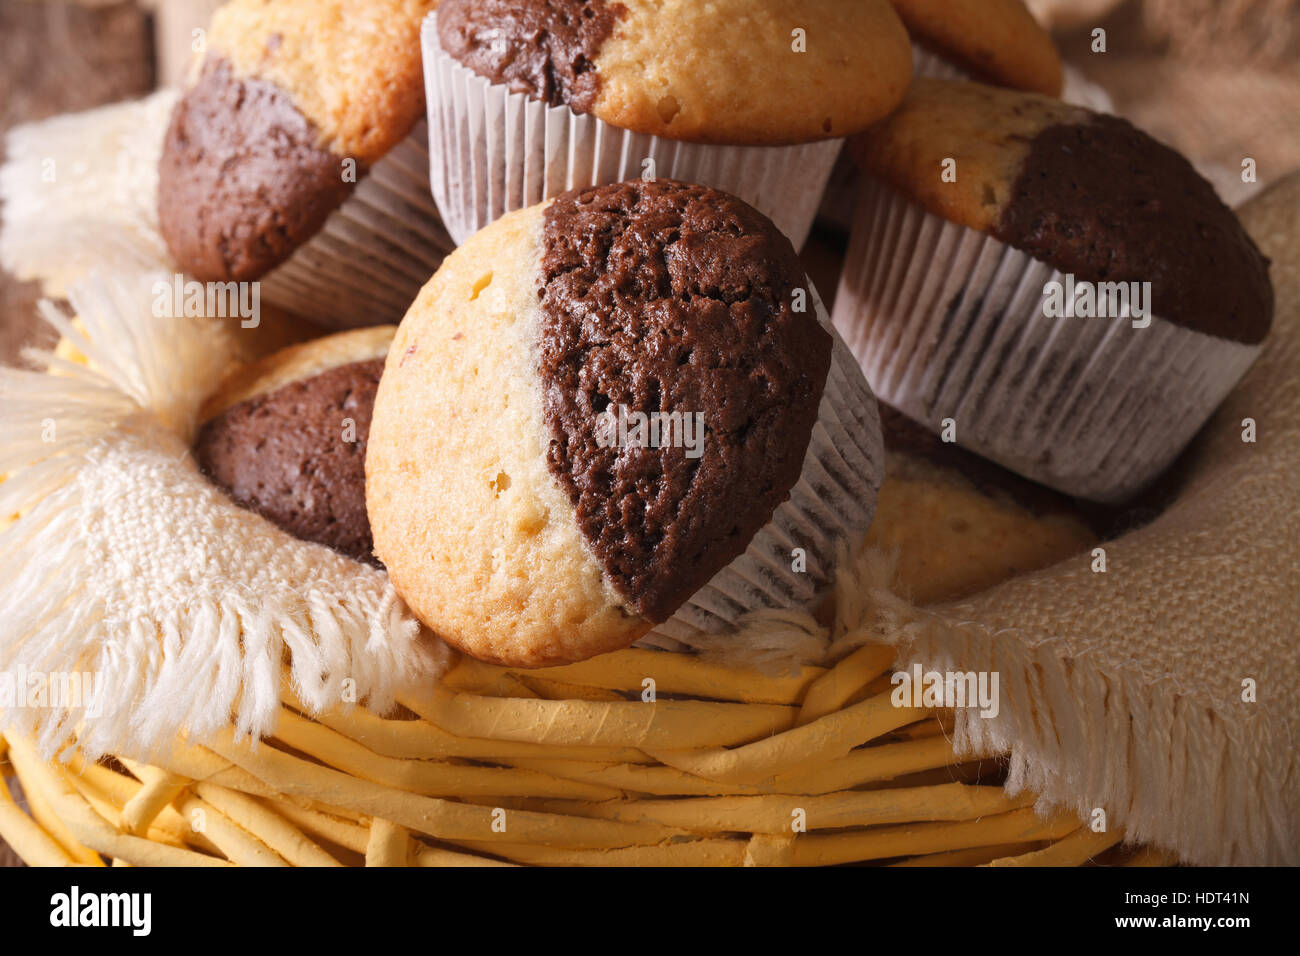 Delicious chocolate orange muffins in a basket close-up, horizontal - Stock Image